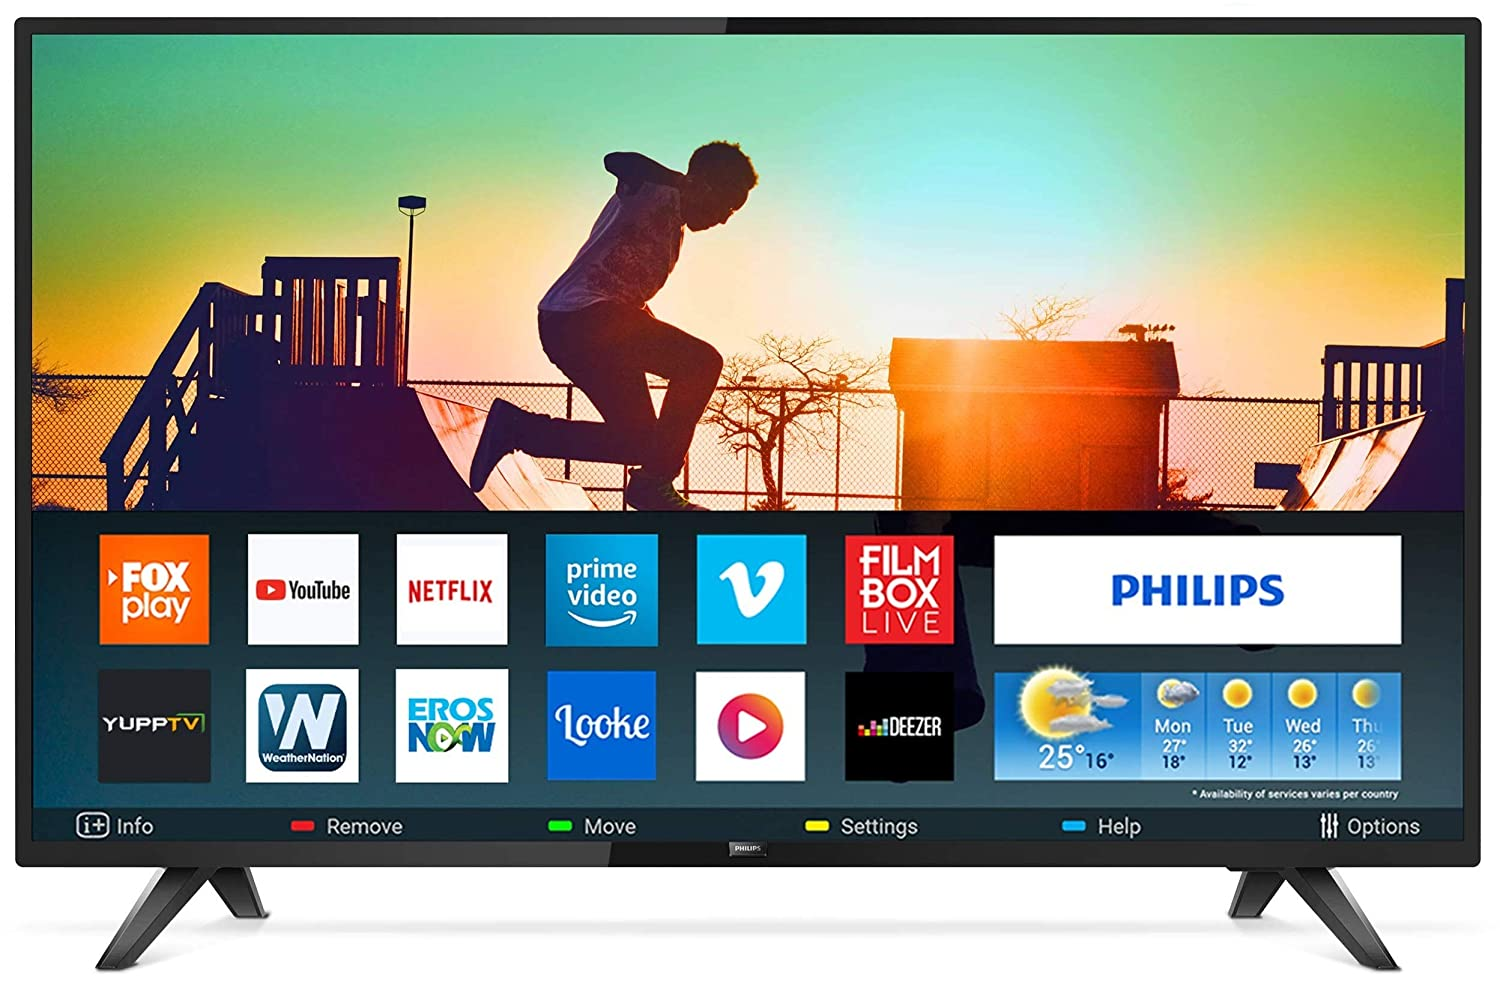 Philips launches 10 new Android TV in India